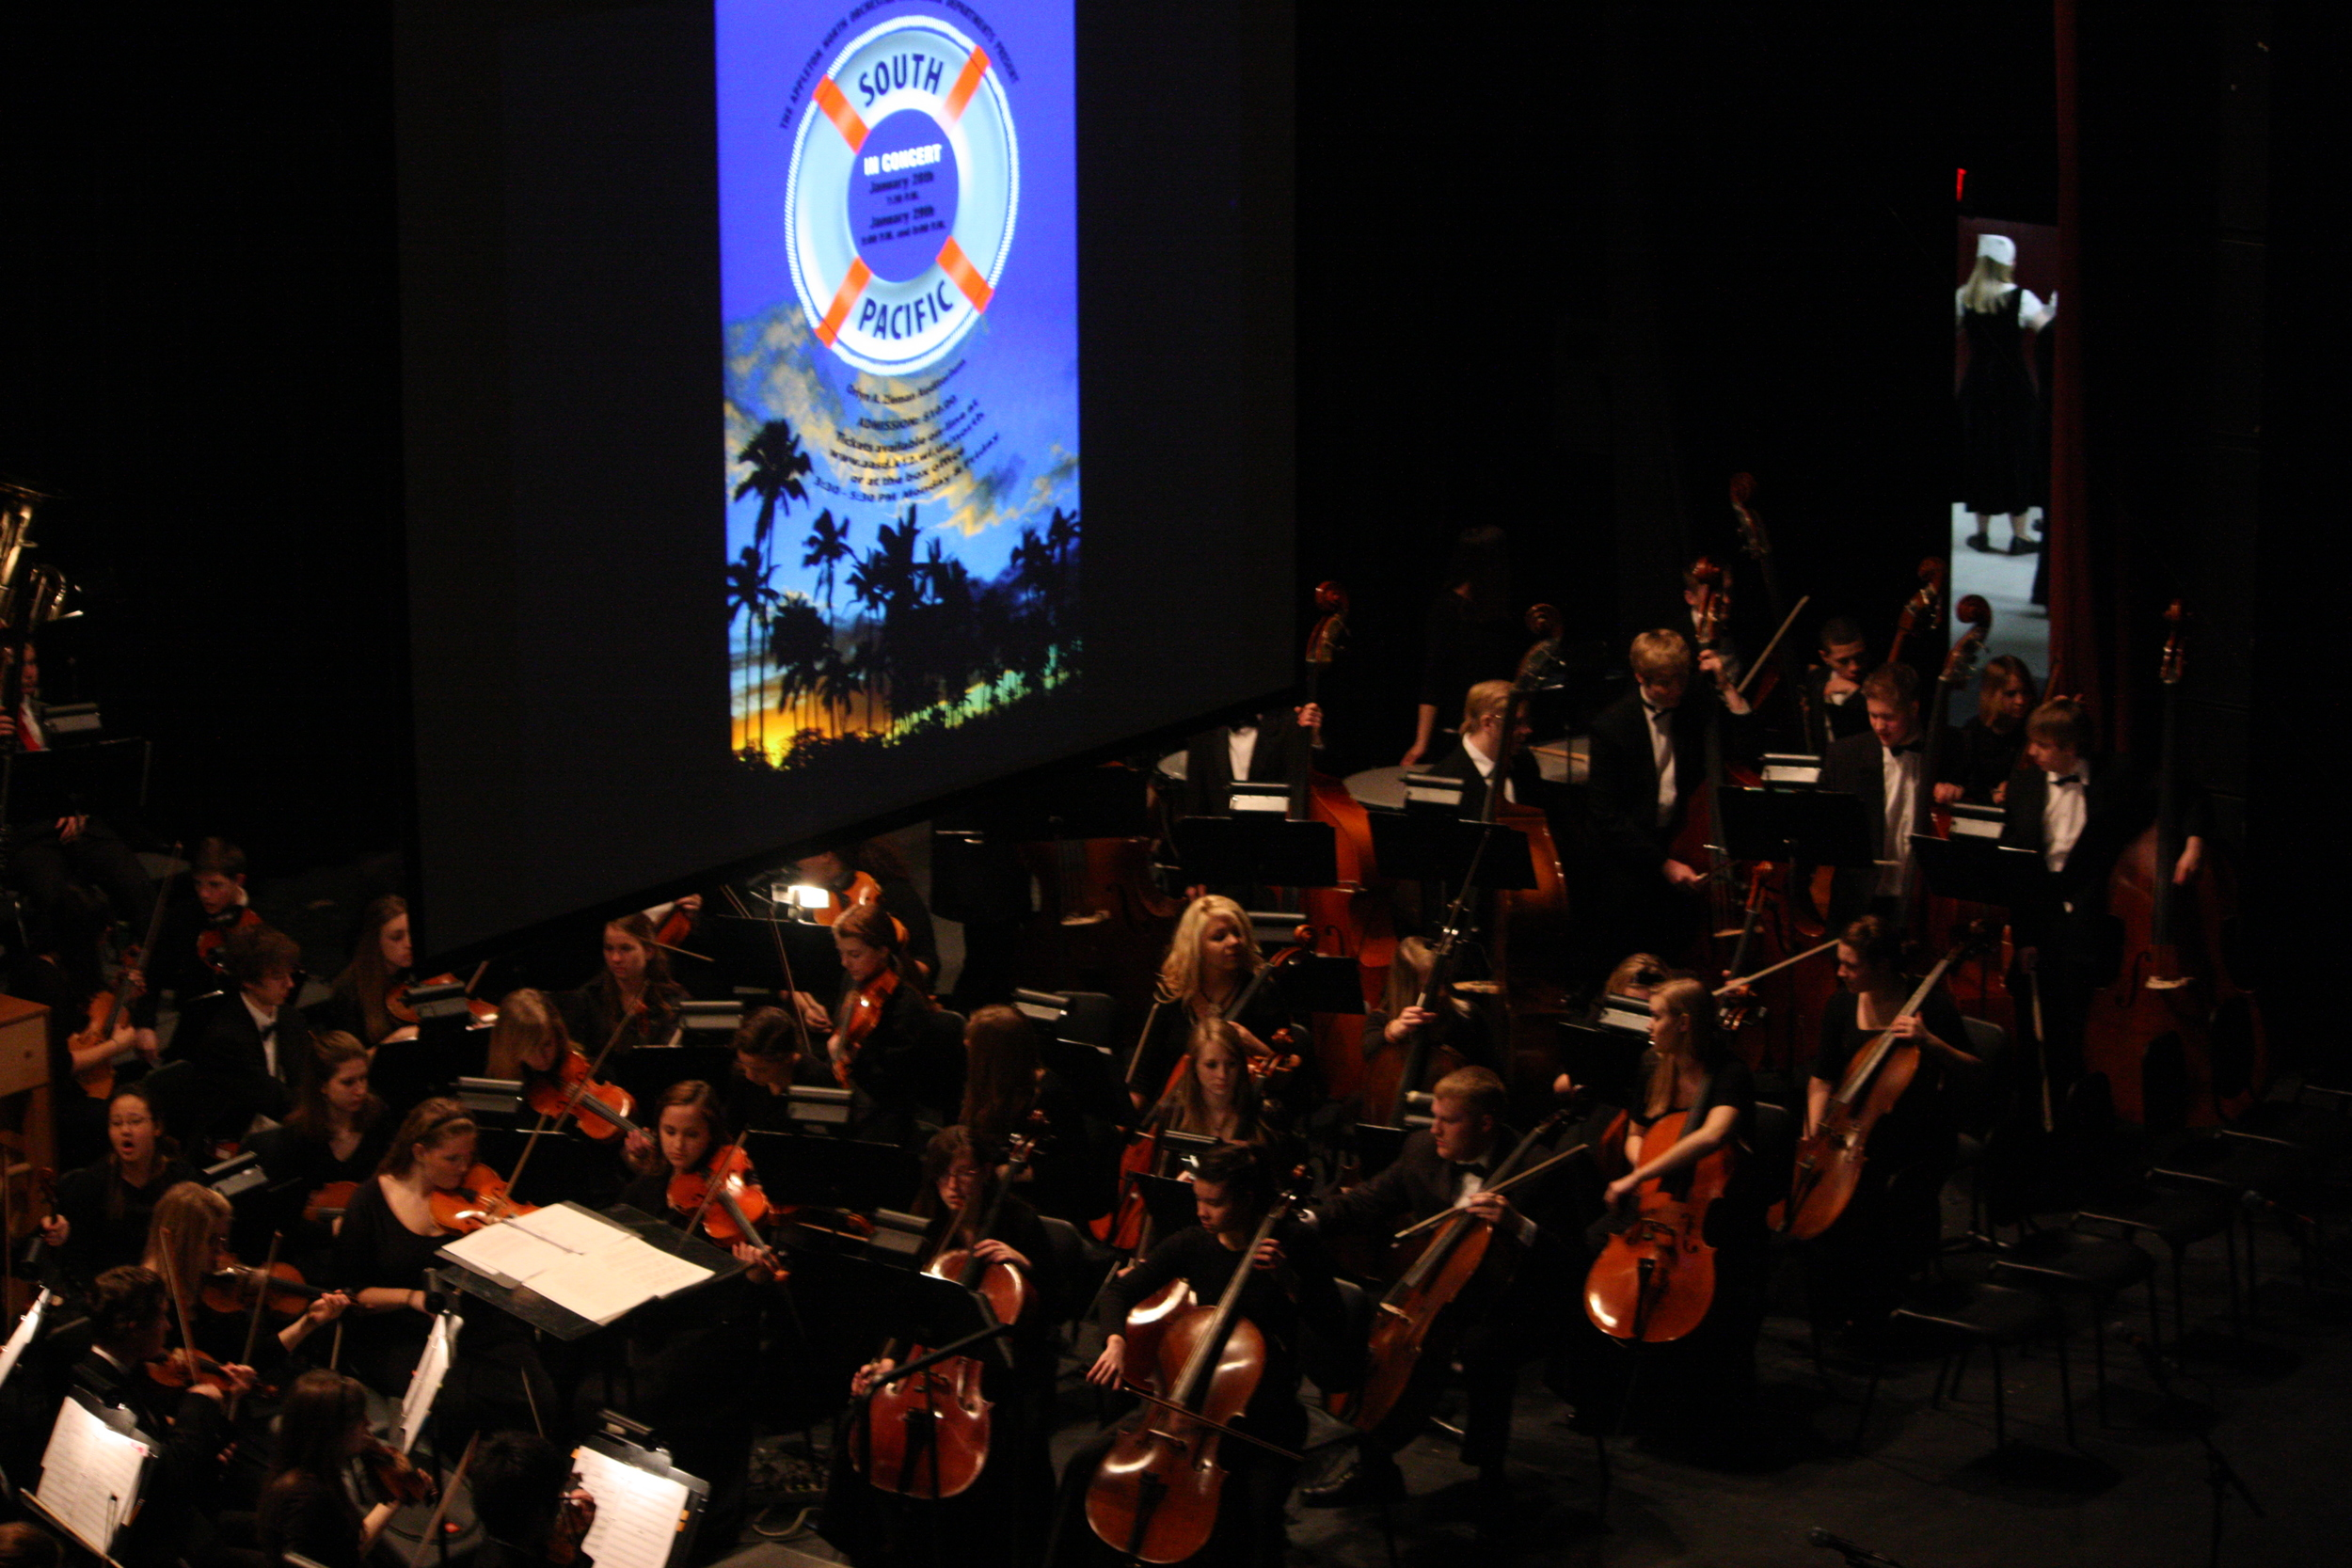 2010 South Pacific in concert 193.jpg